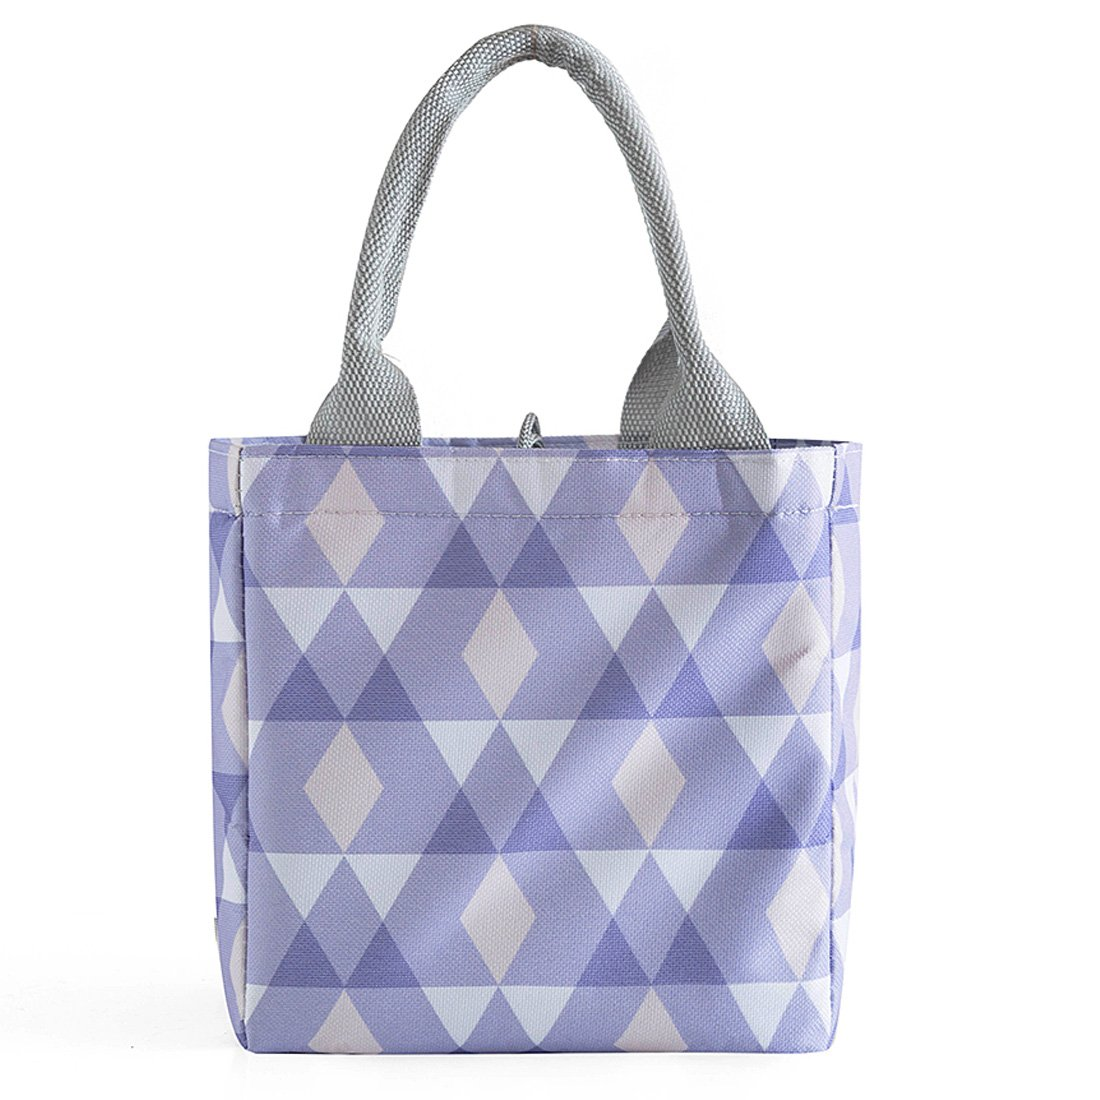 Oyachic Thermal Lunch Bag Insulated Tote Leakproof Drawstring Bag with Foil Liner for Office School and Picnic Purple diamond